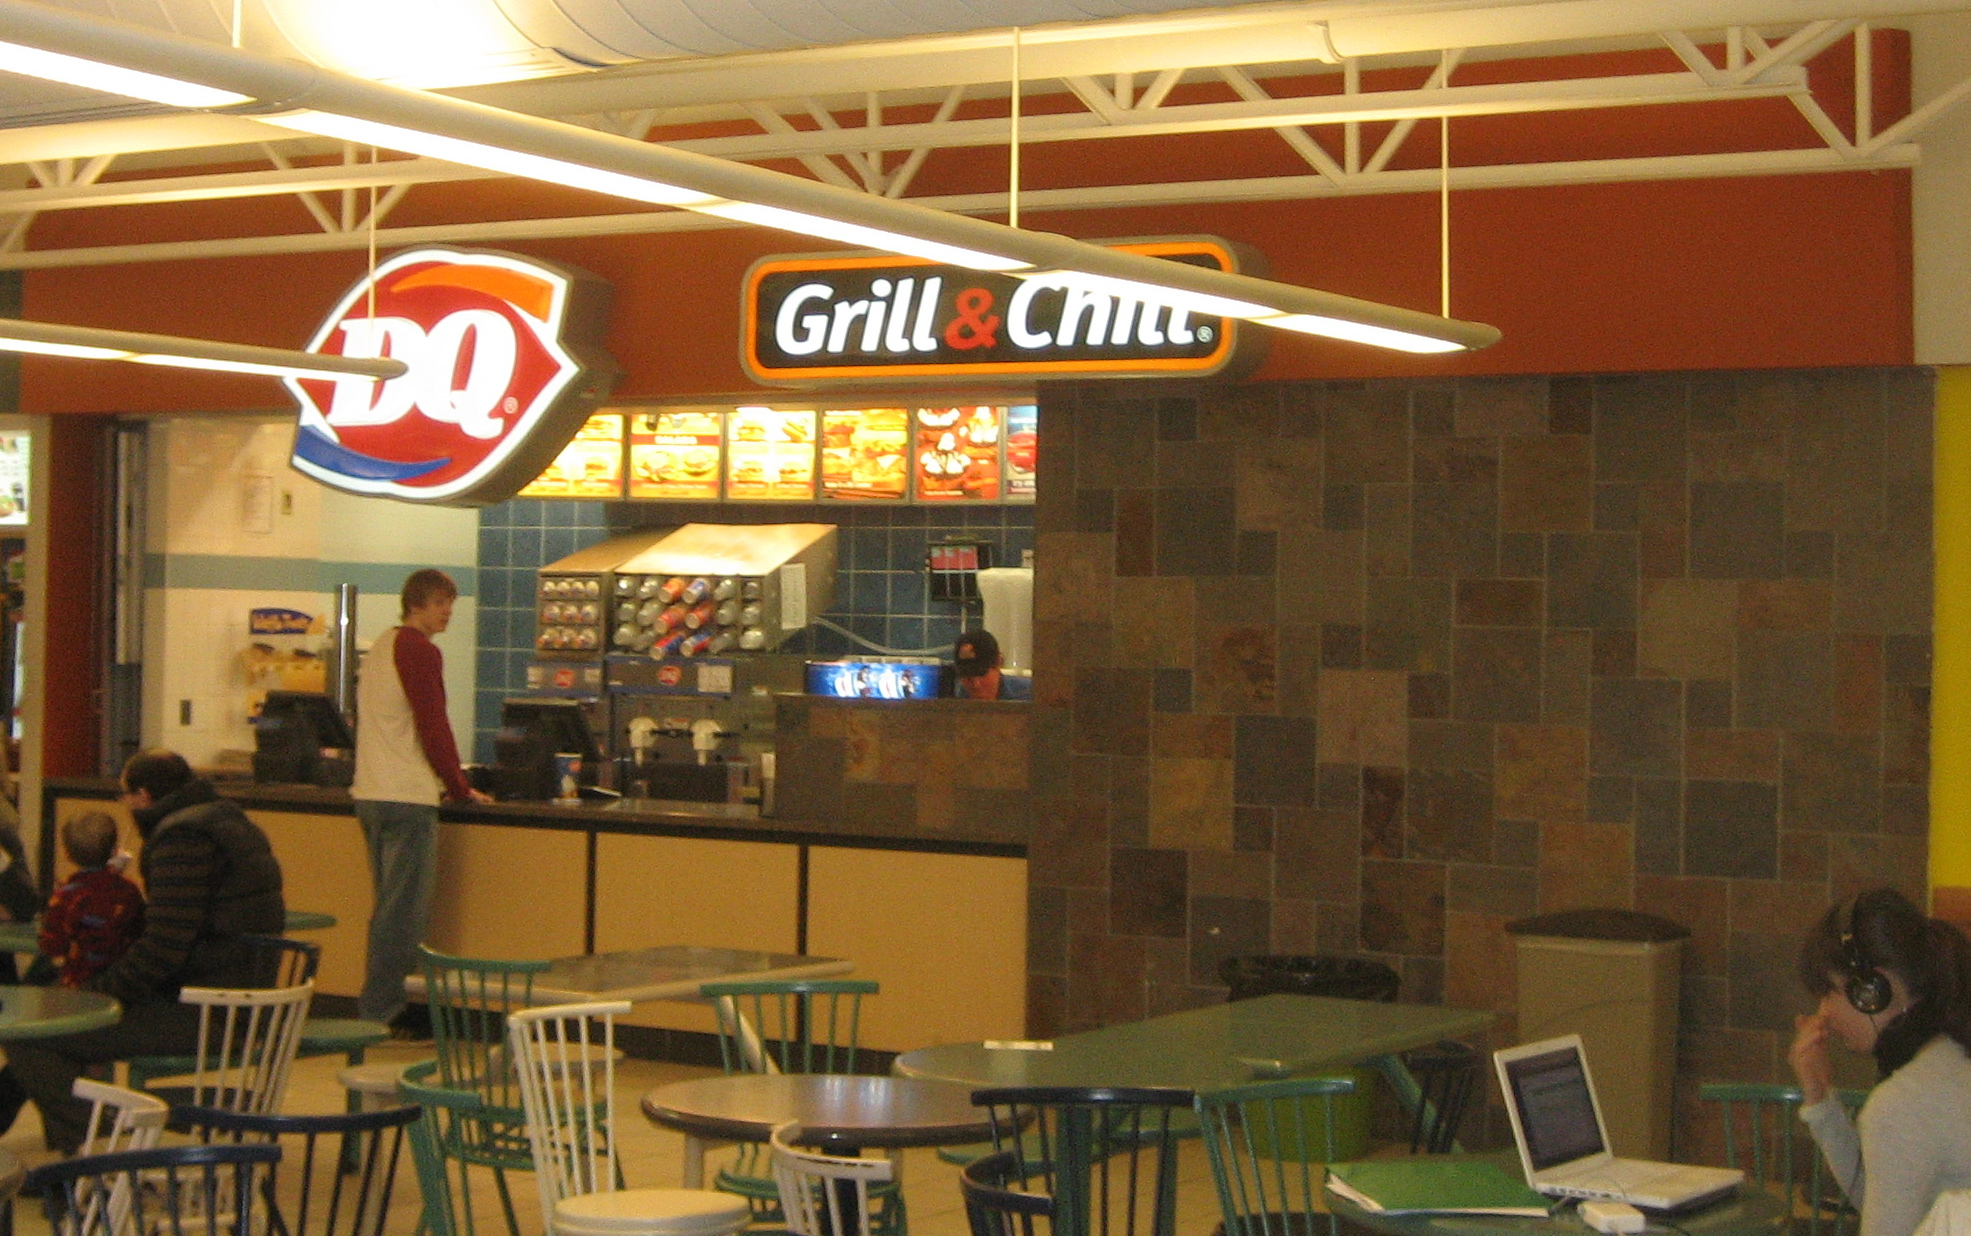 Dq Grill Chill Restaurant Sherwood Park Ab